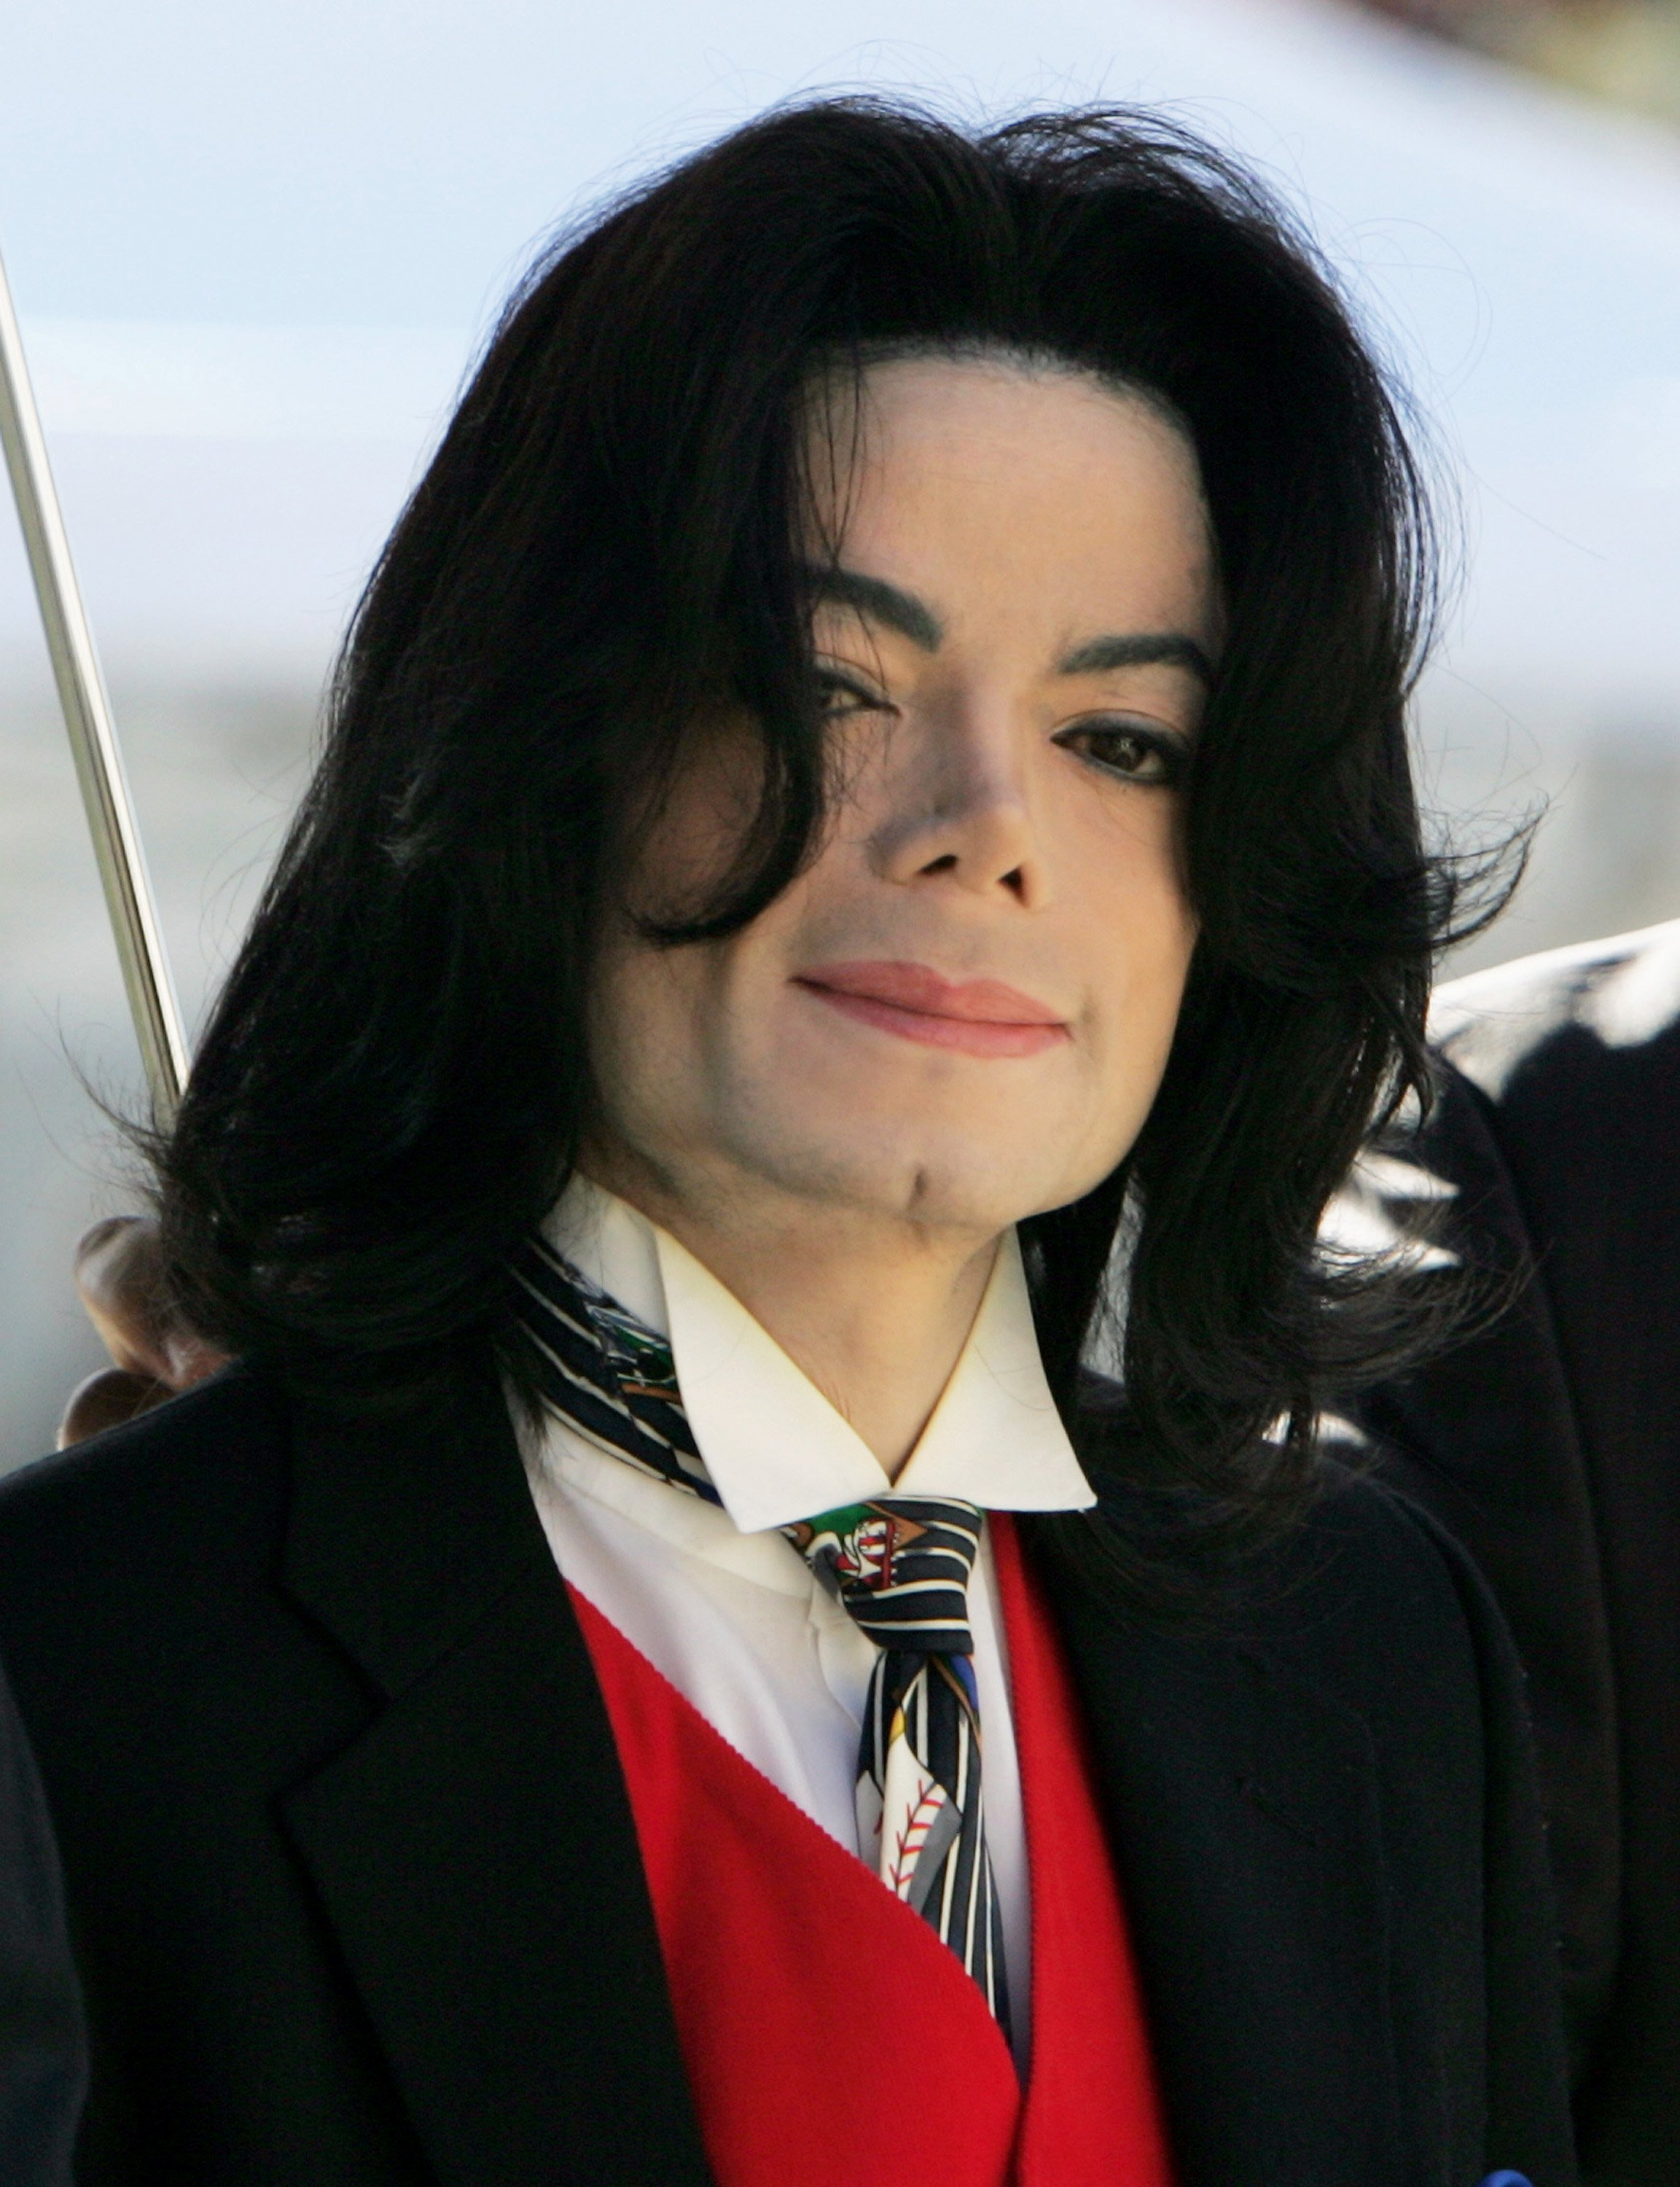 Michael Jackson at the Santa Barbara County courthouse on Apr. 29, 2005 in California | Photo: Getty Images